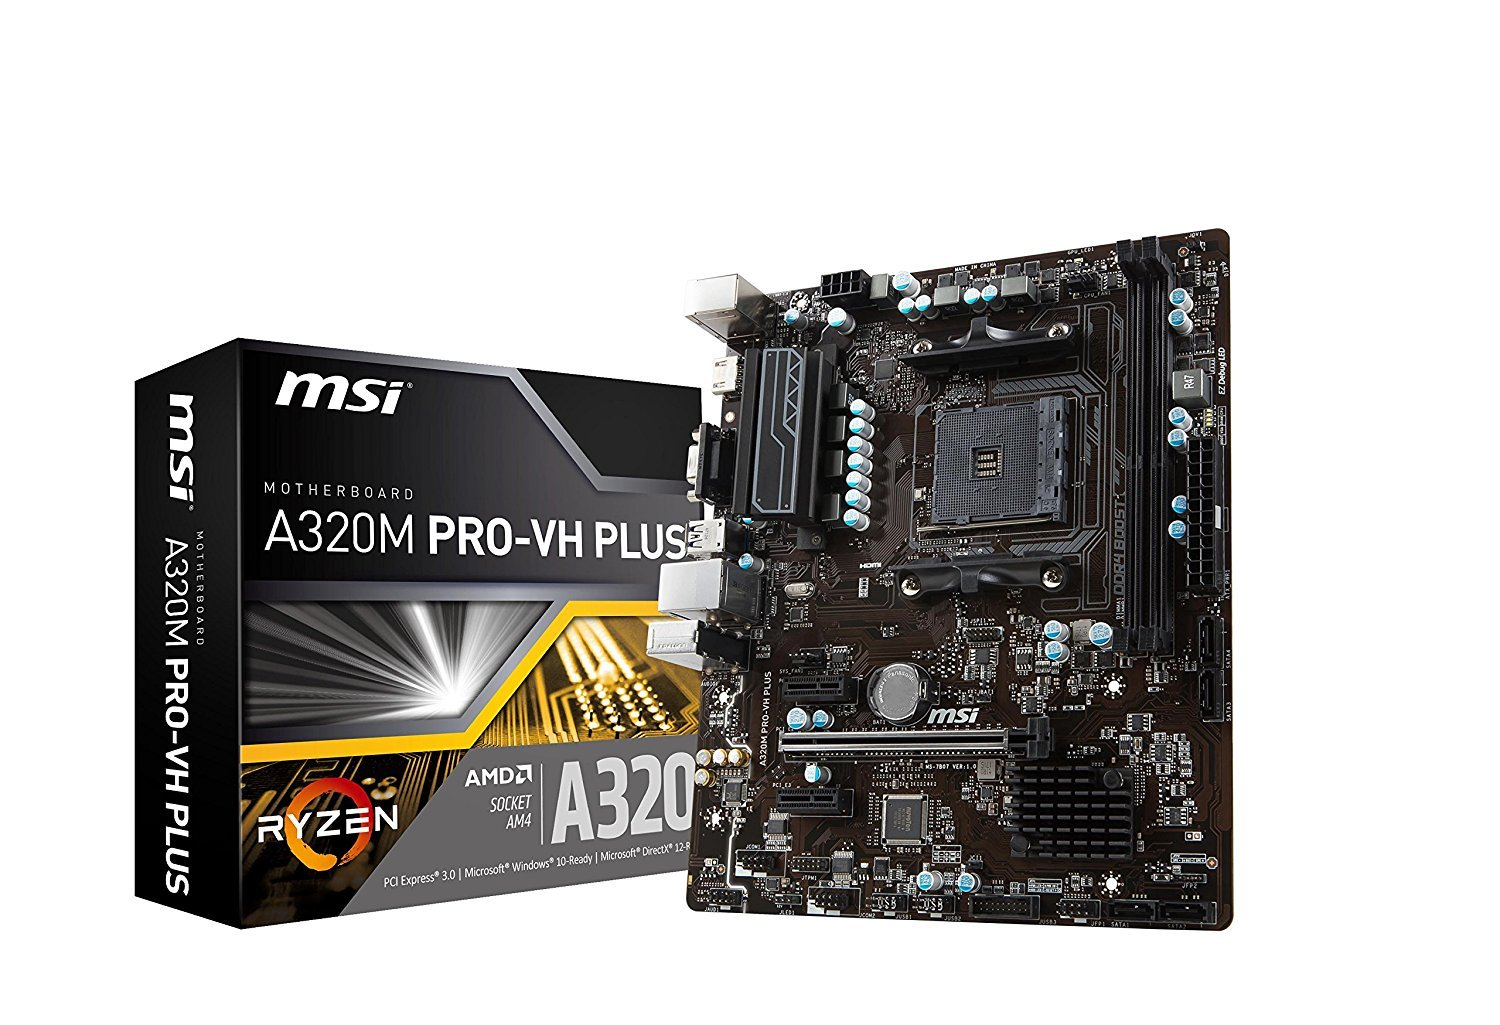 MSI A320M Pro-VH PLUS Motherboard image